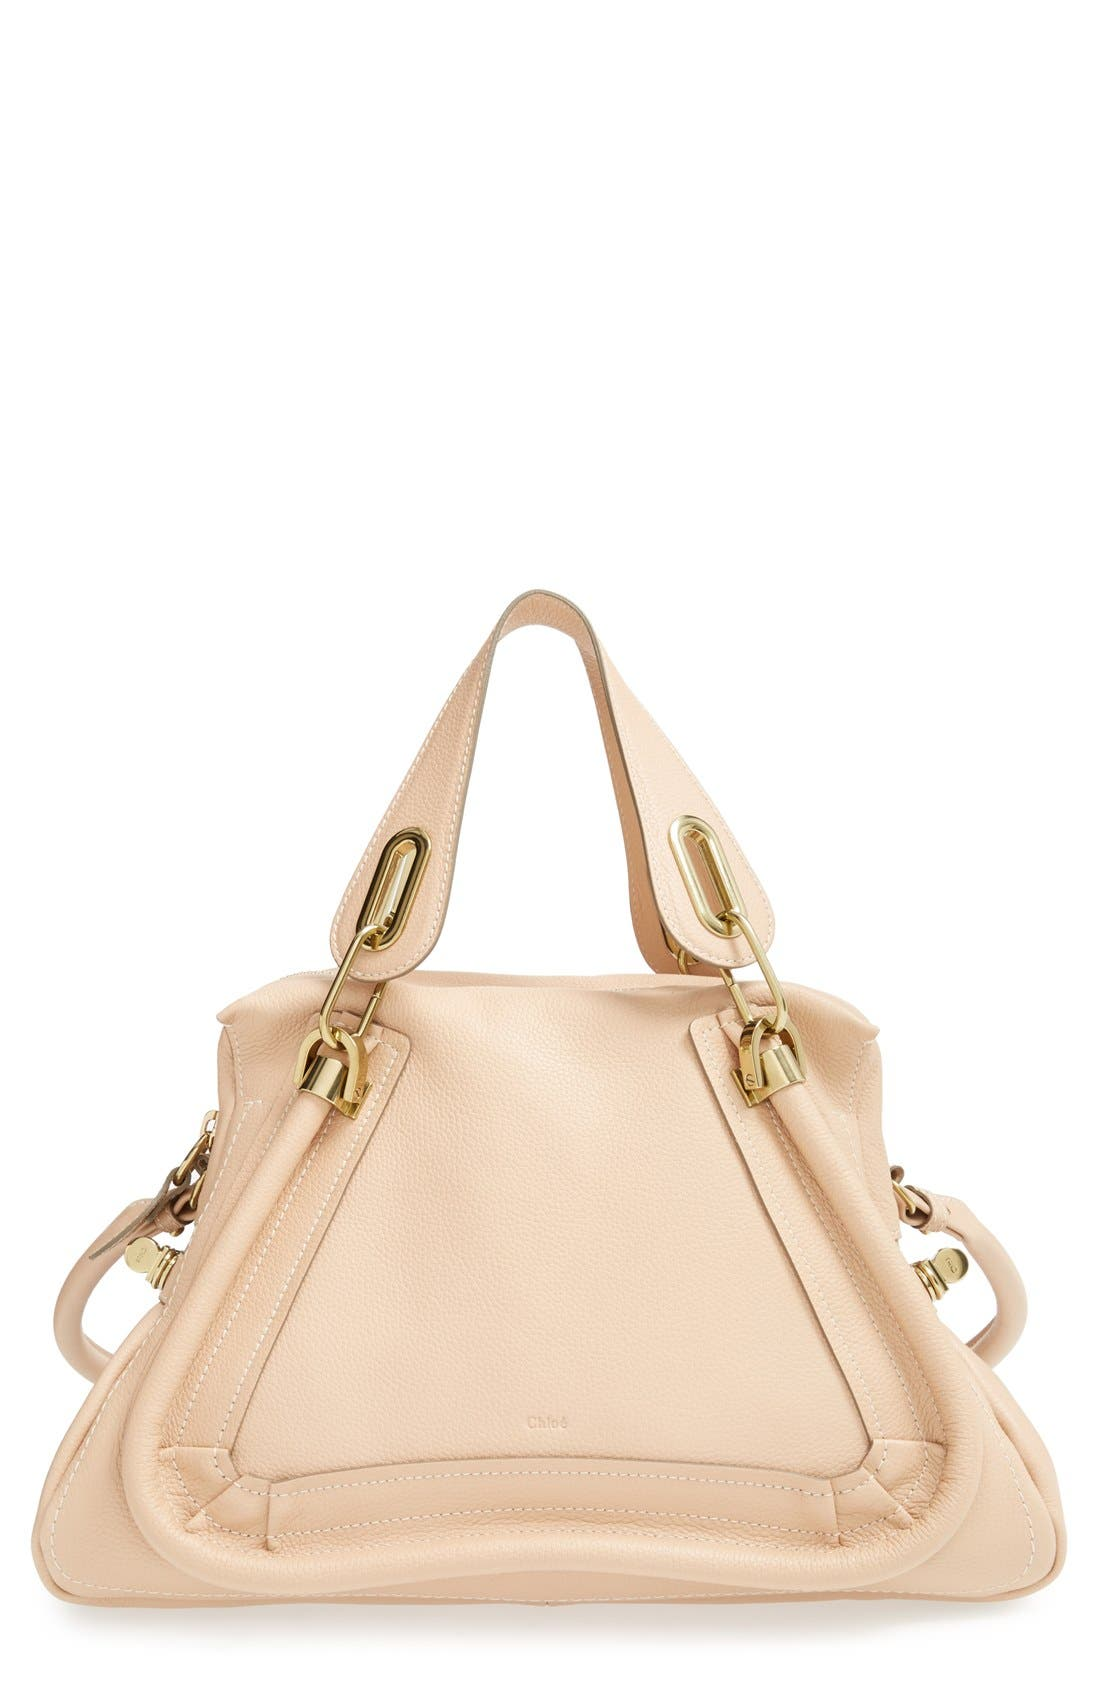 Main Image - Chloé 'Paraty - Medium' Leather Satchel